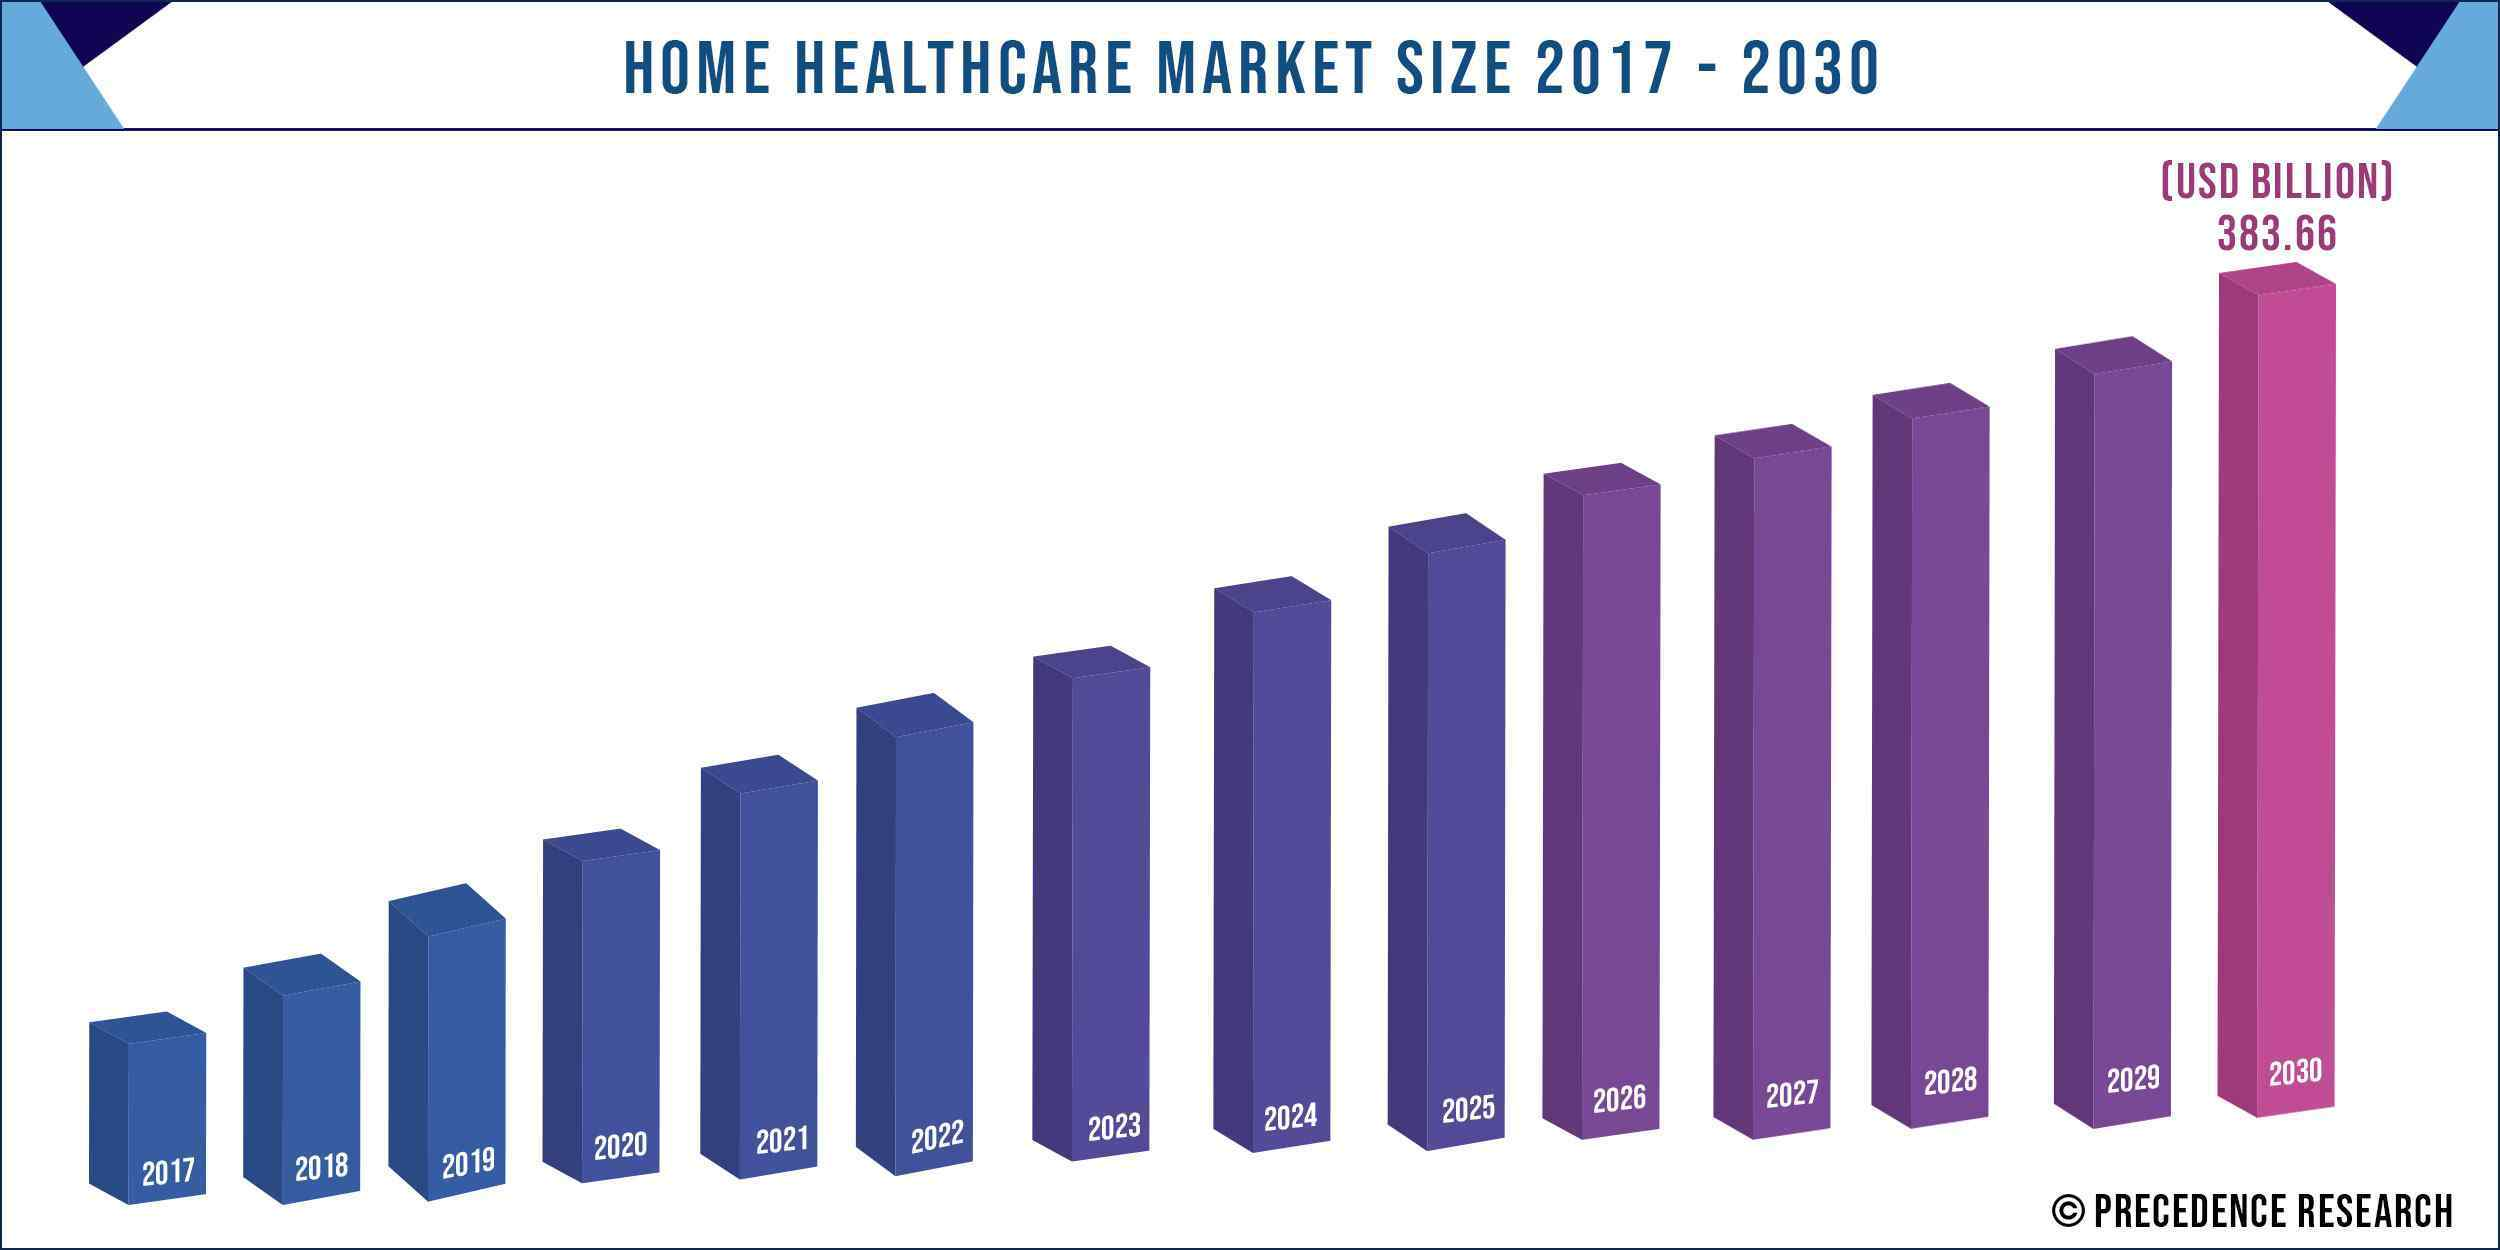 Home Healthcare Market Size 2017 to 2030